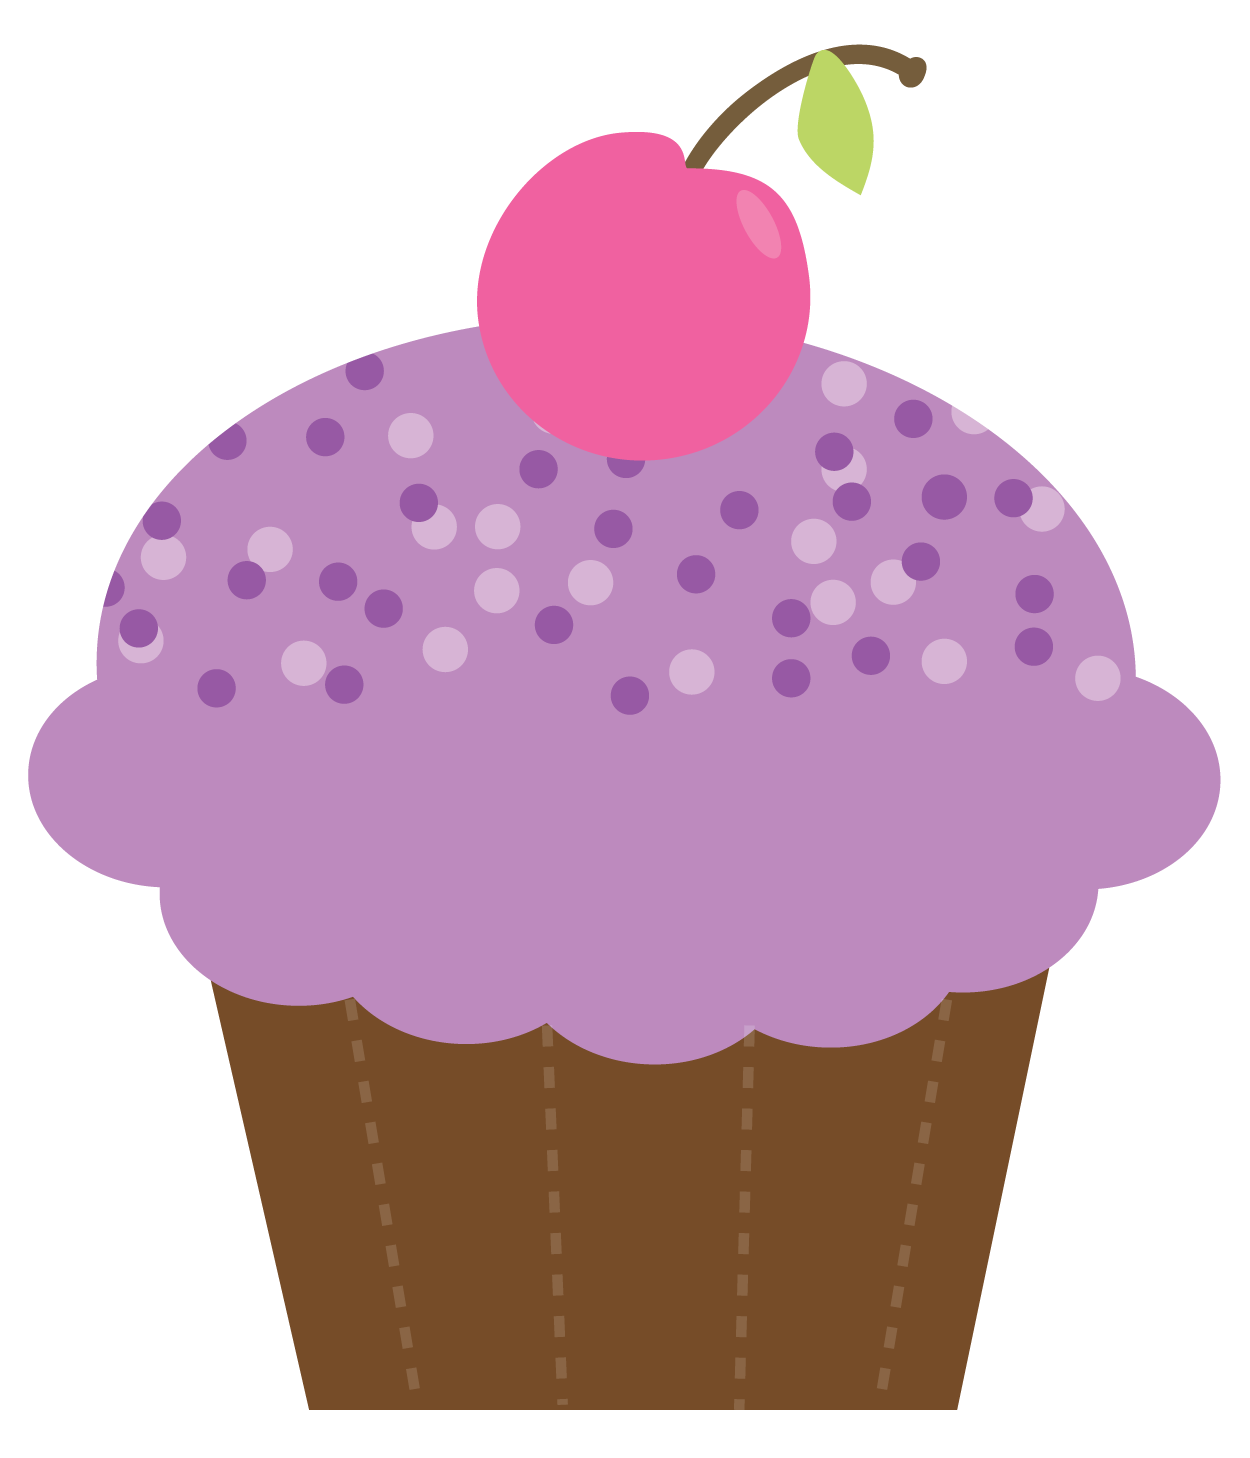 Cupcake with crown clipart image download 1st birthday cupcake clipart - ClipartFest image download